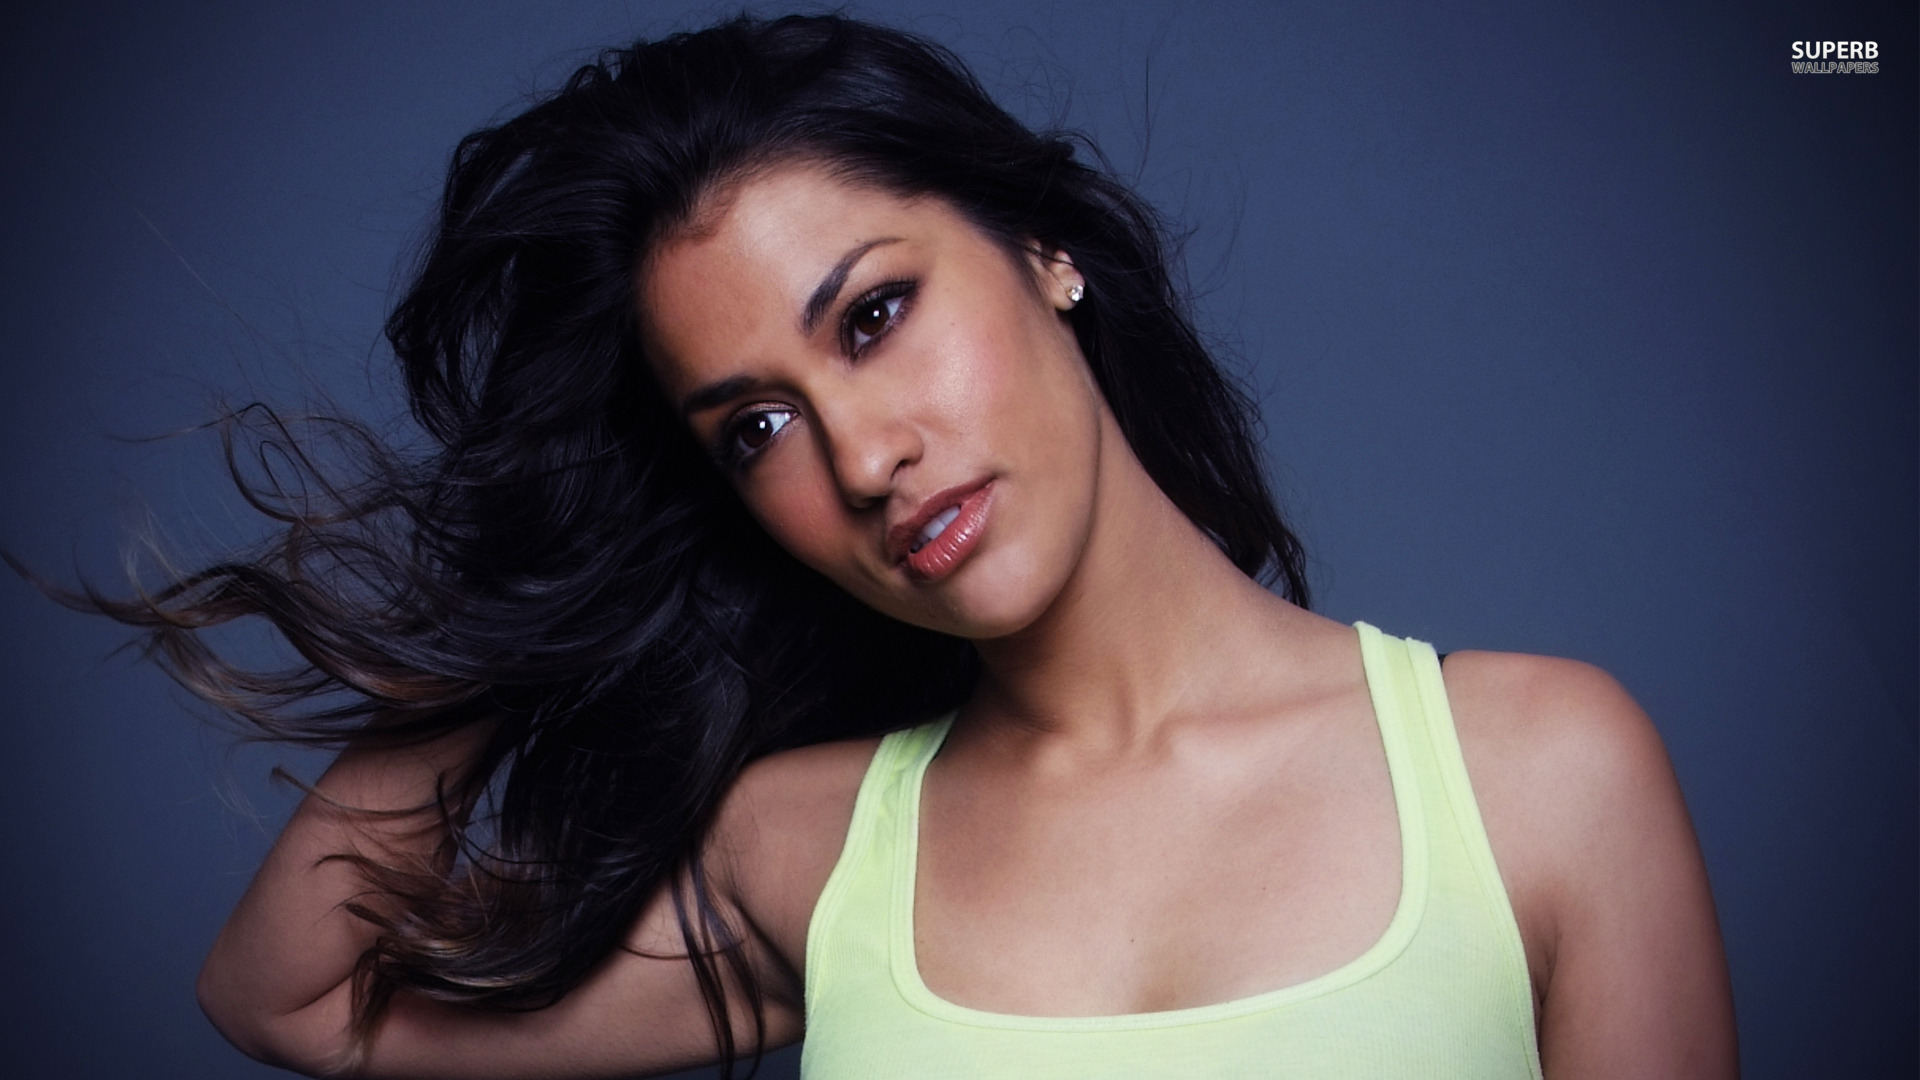 janina gavankar - photo #34